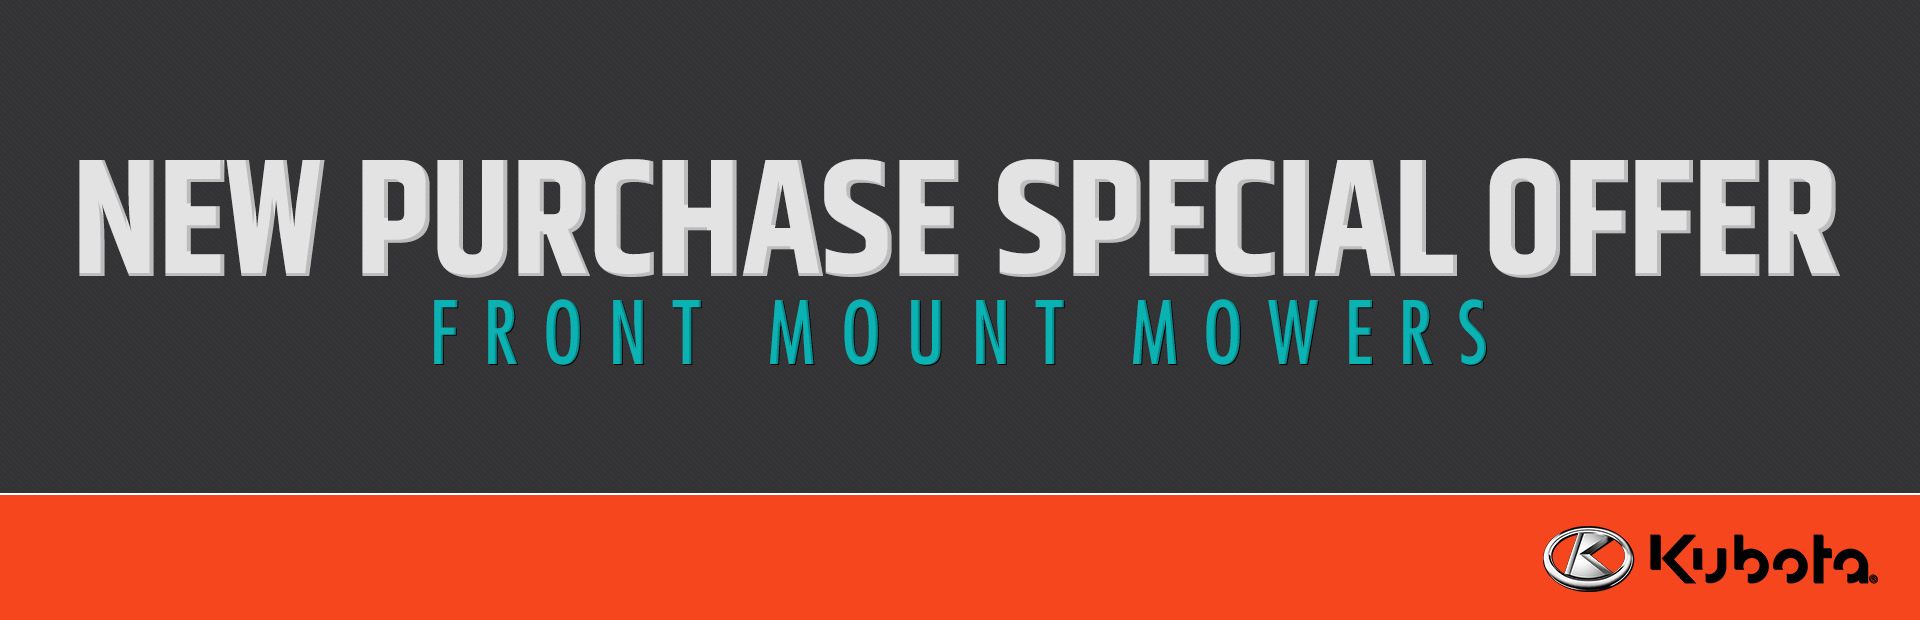 Kubota: New Purchase Special Offer - Front Mount Mowers